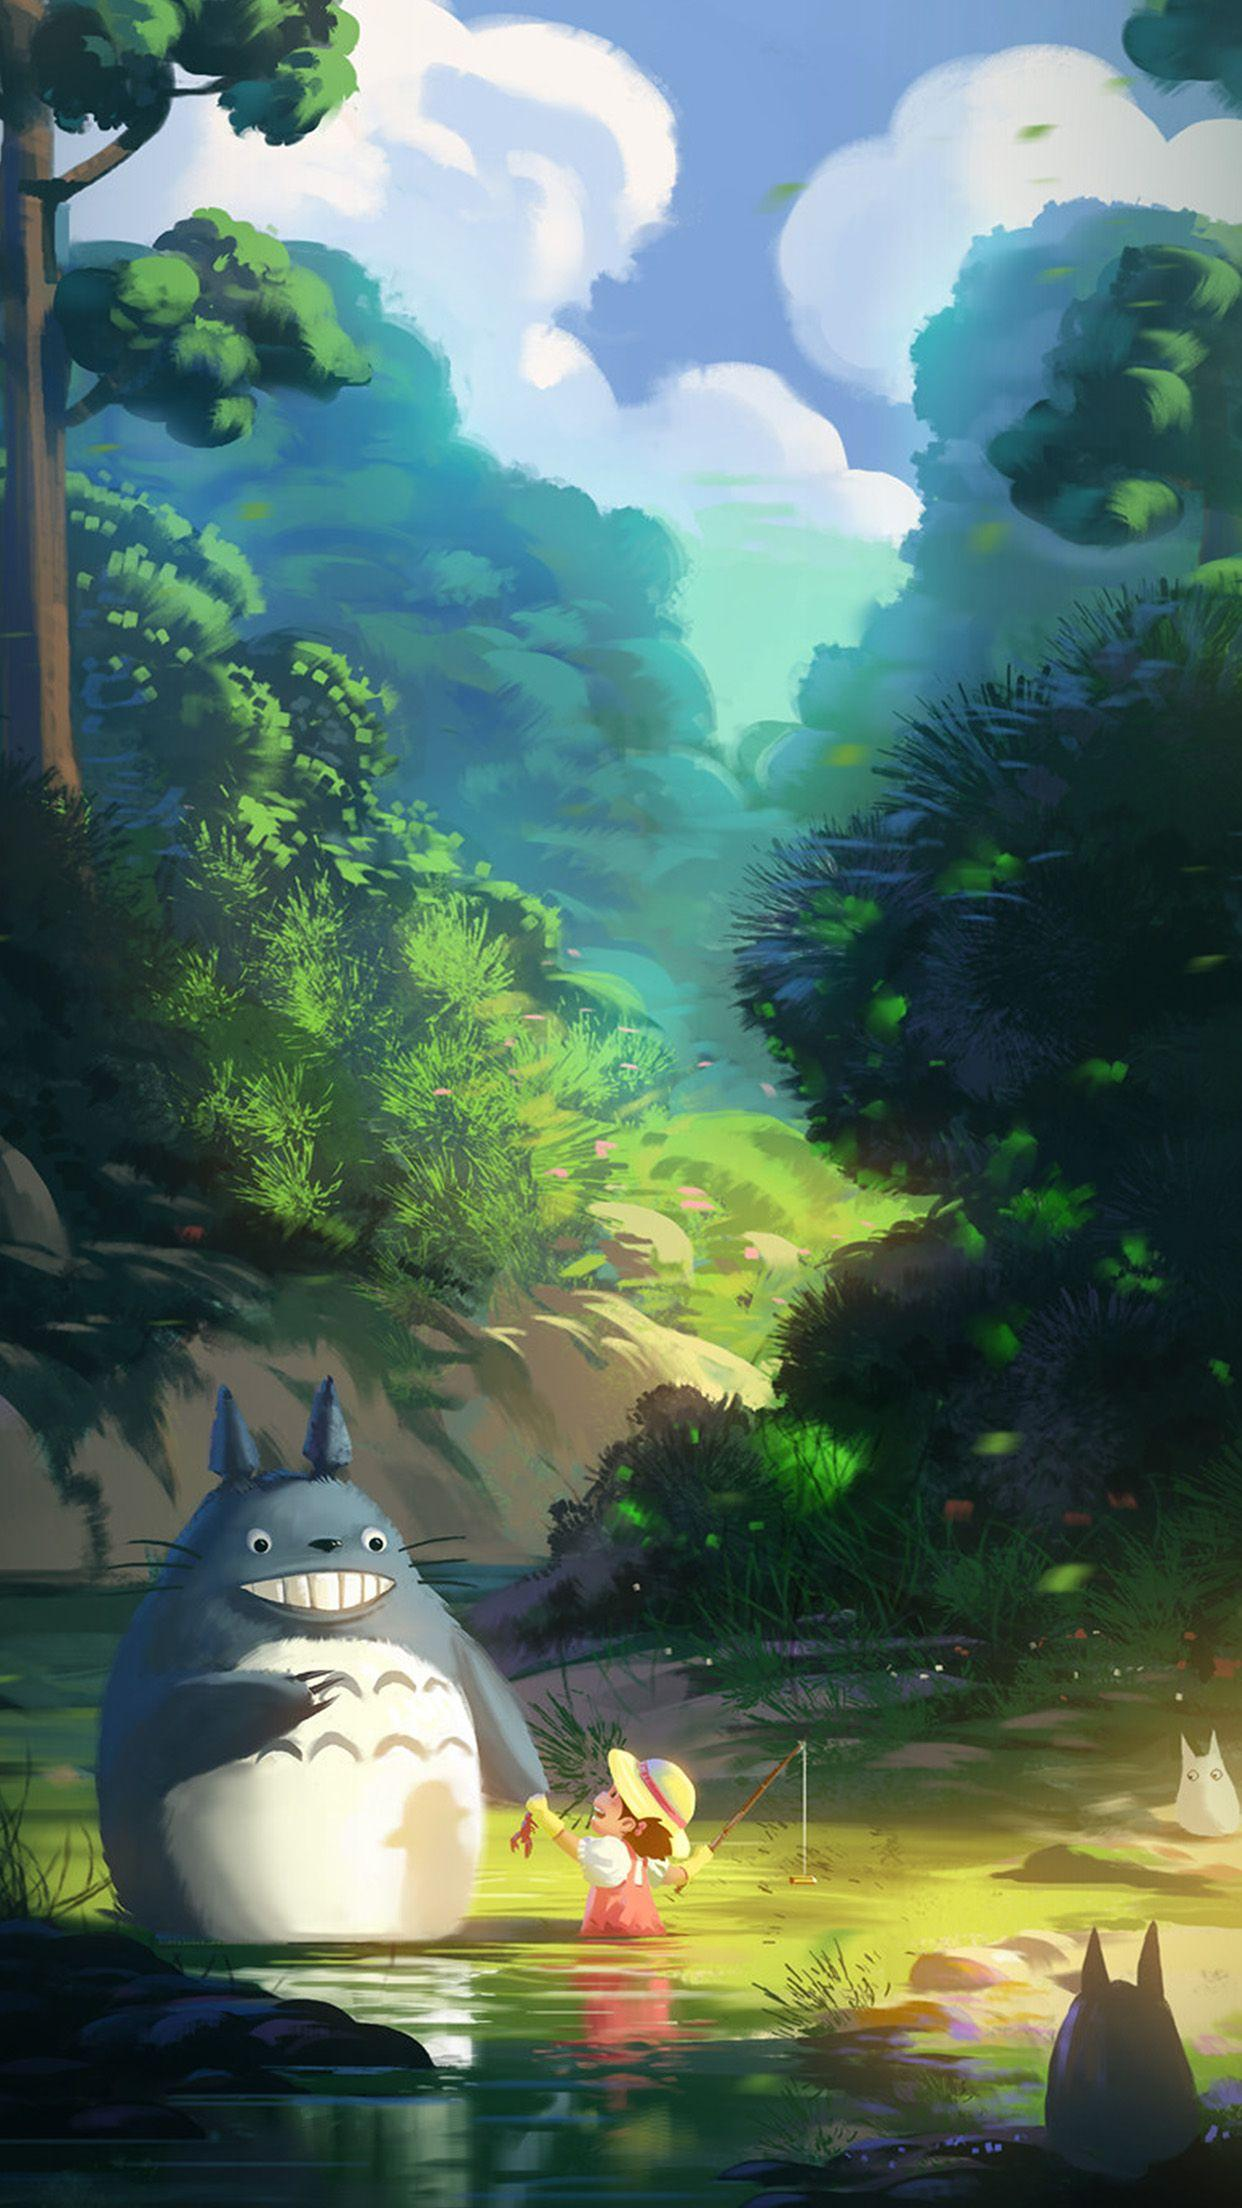 Totoro Anime Liang Xing Illustration Art Android wallpapers